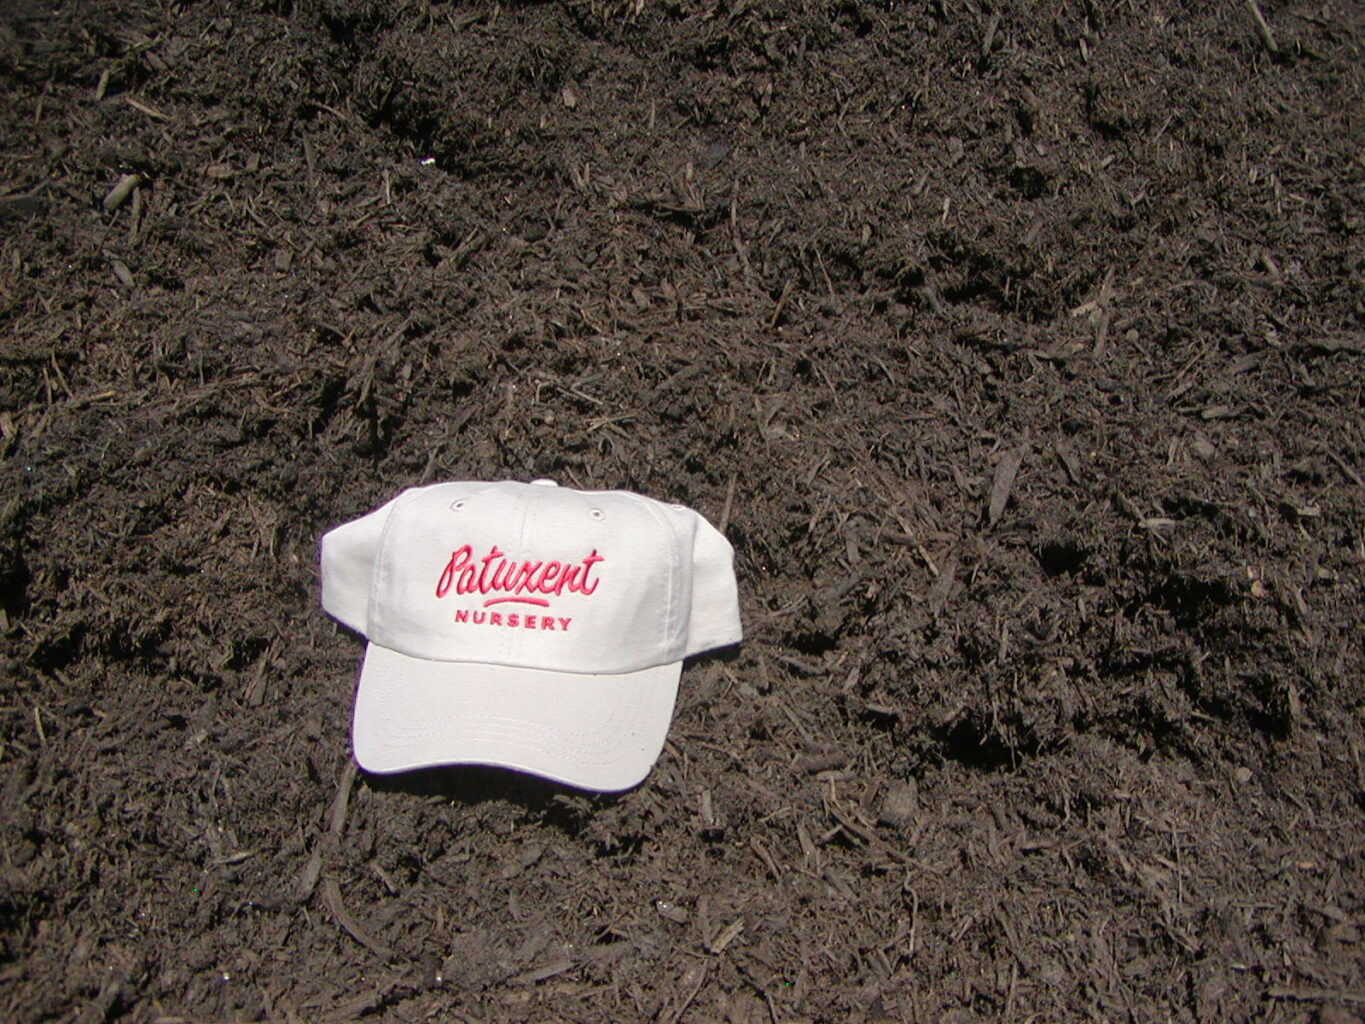 Buy Shredded Mulch Online Bulk Delivery Patuxent Nursery Bowie Md